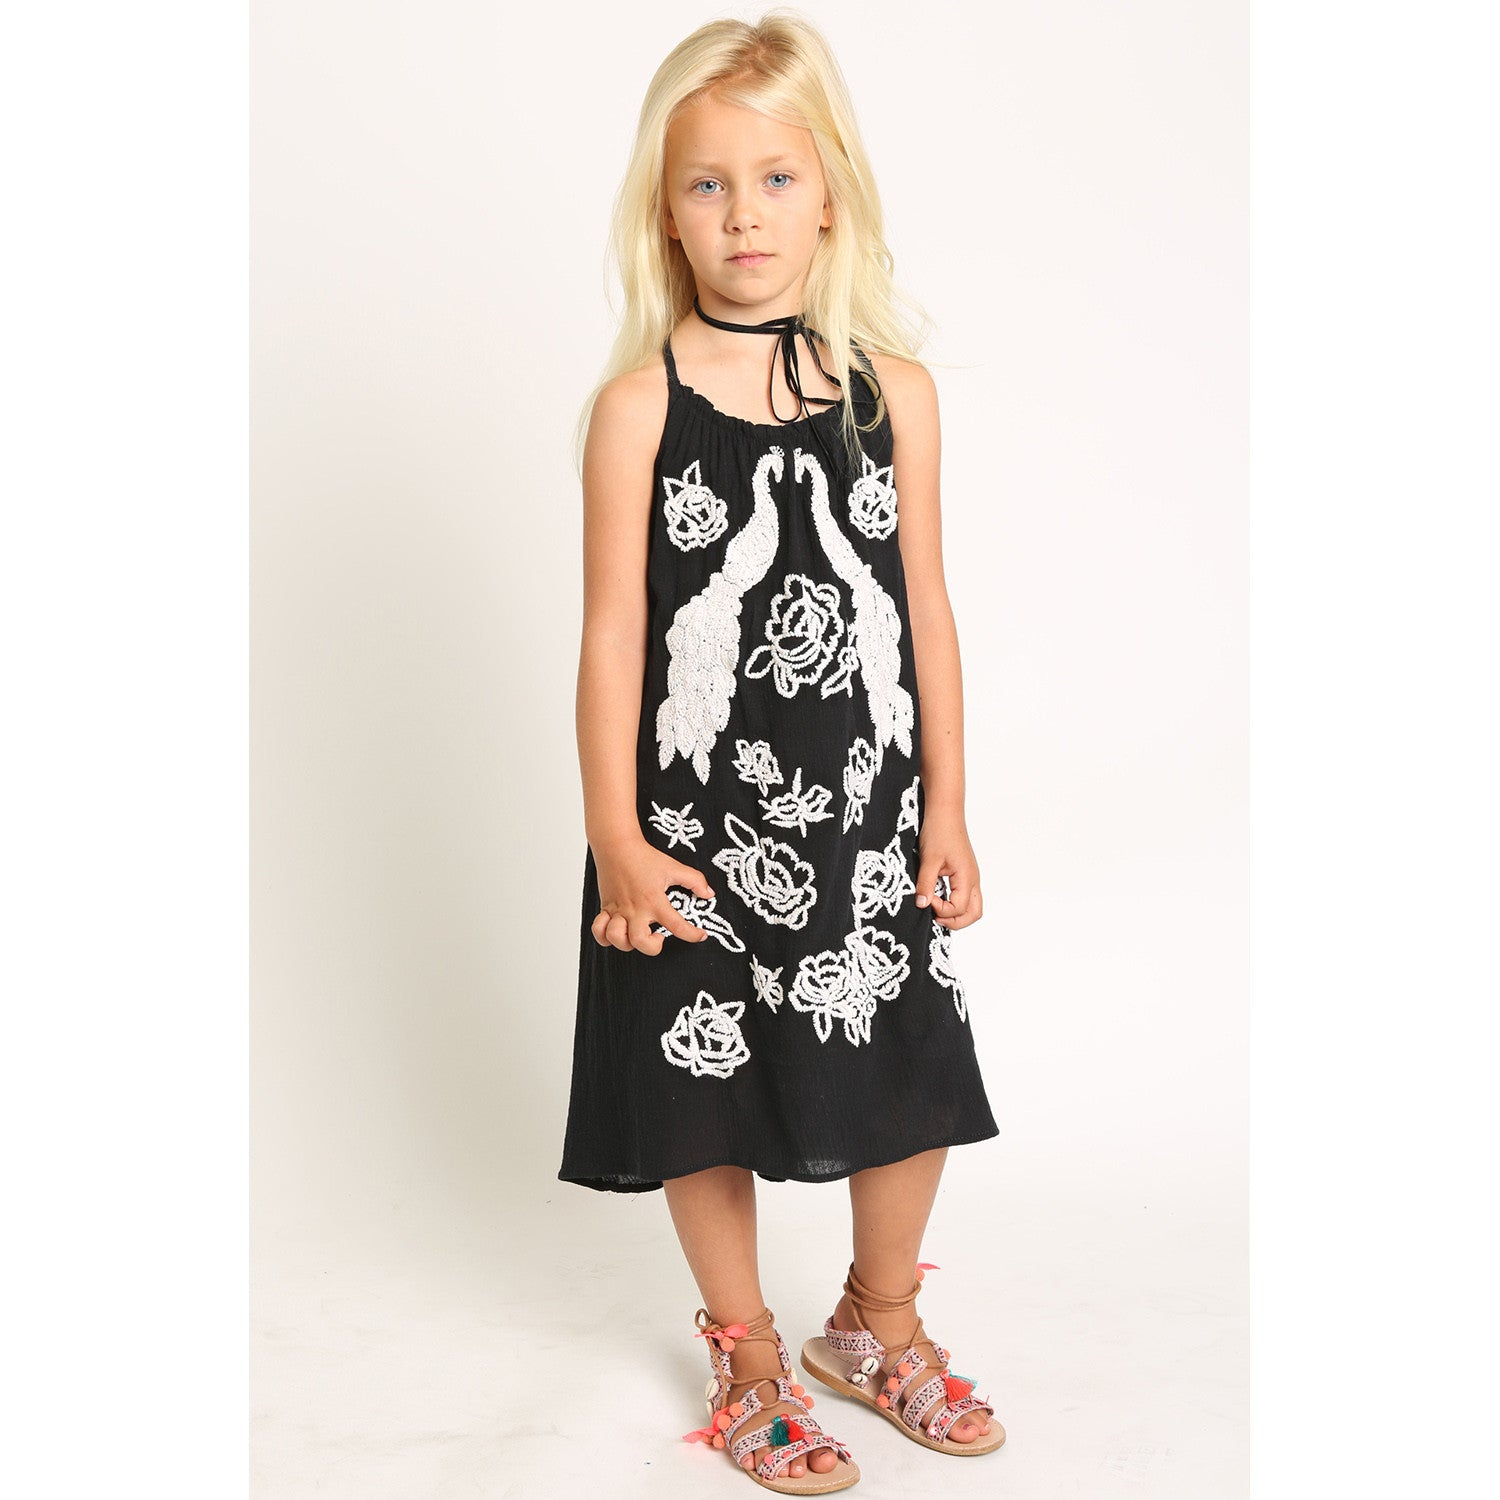 Peacock Embroidery Strappy Dress for Girls